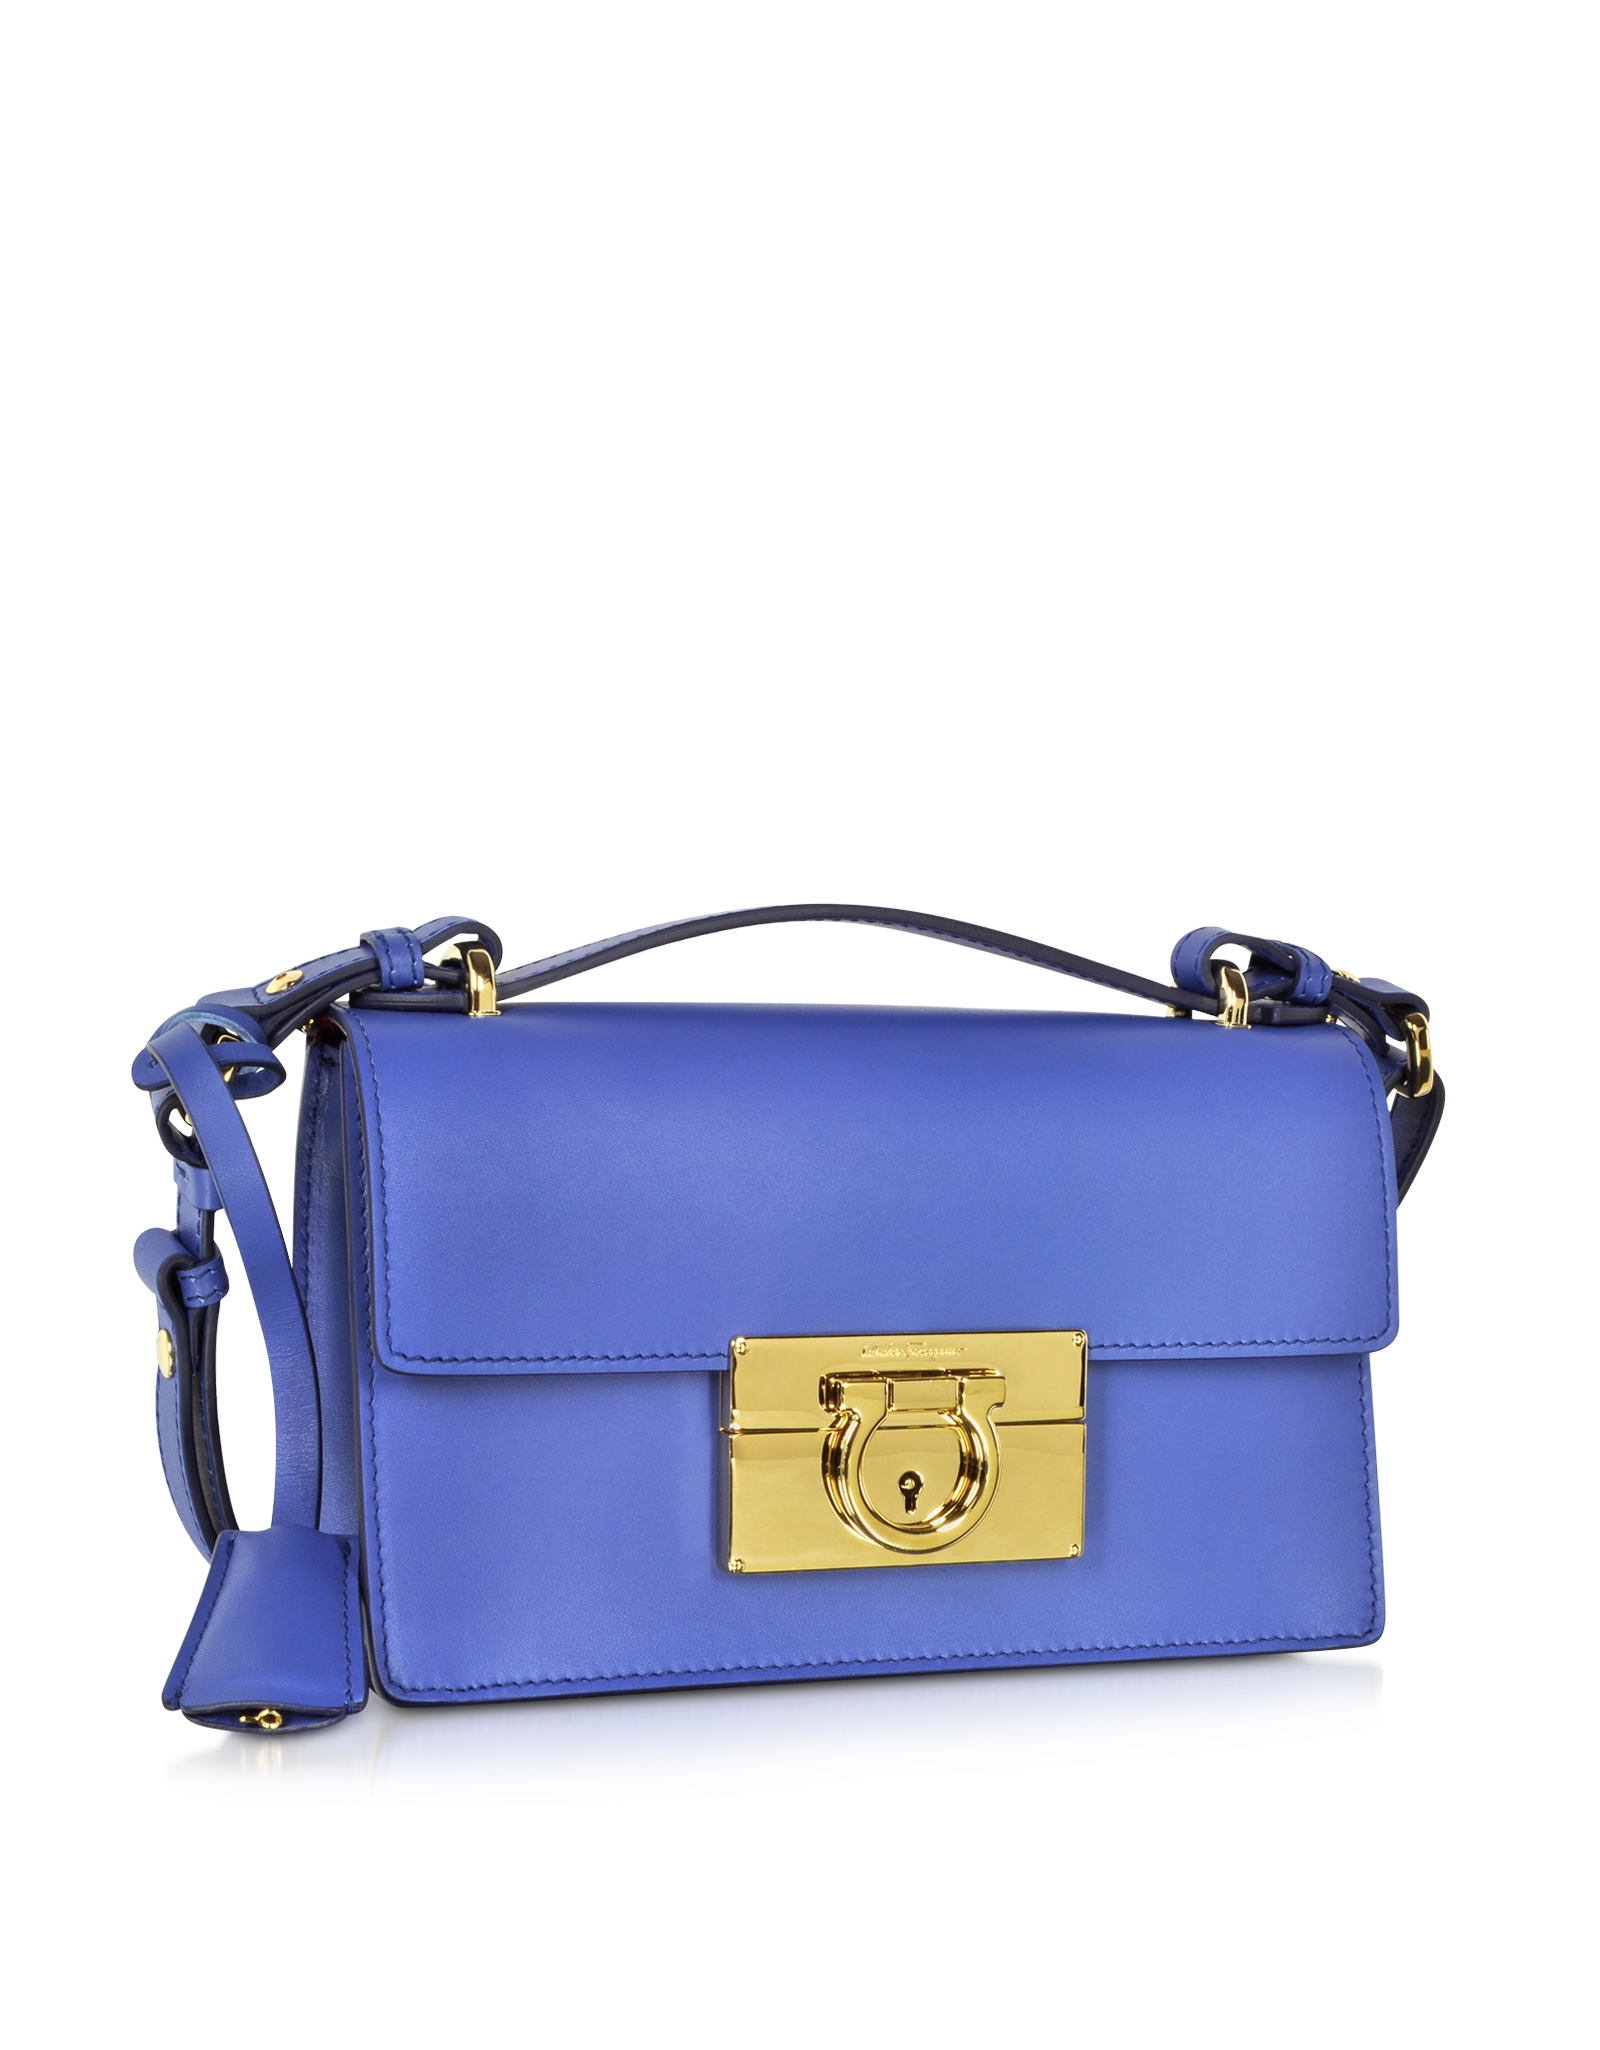 69b62bdf990c Lyst - Ferragamo Small Aileen New Iris Leather Shoulder Bag in Blue